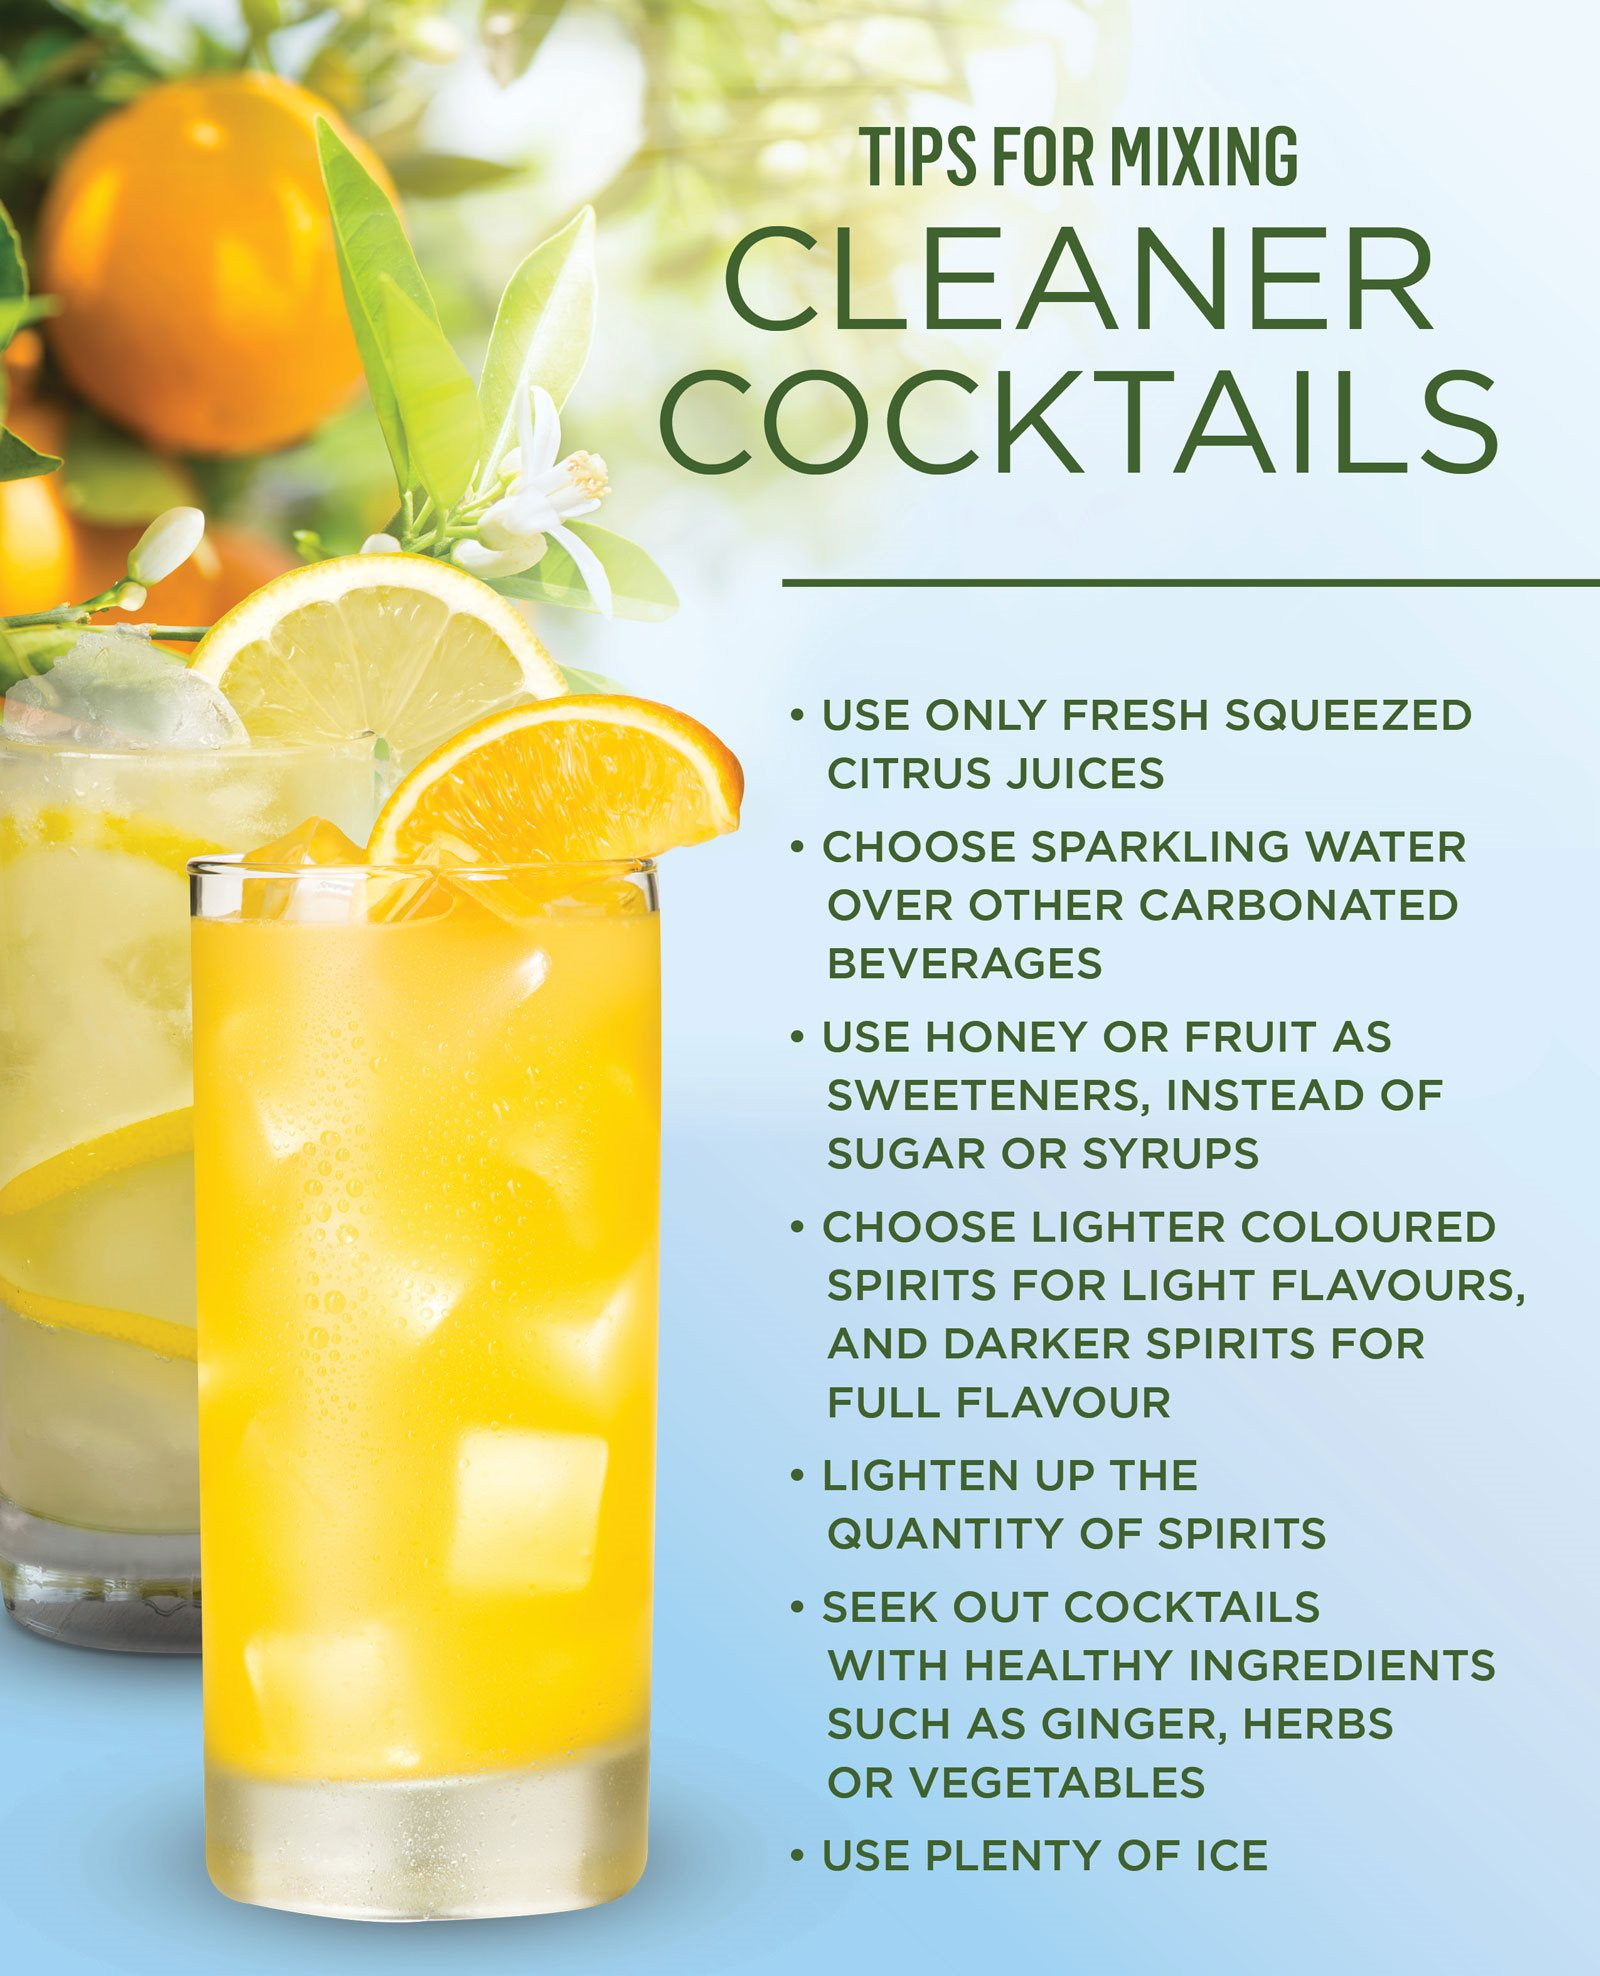 Cleaner-Cocktails-Infographic-sm